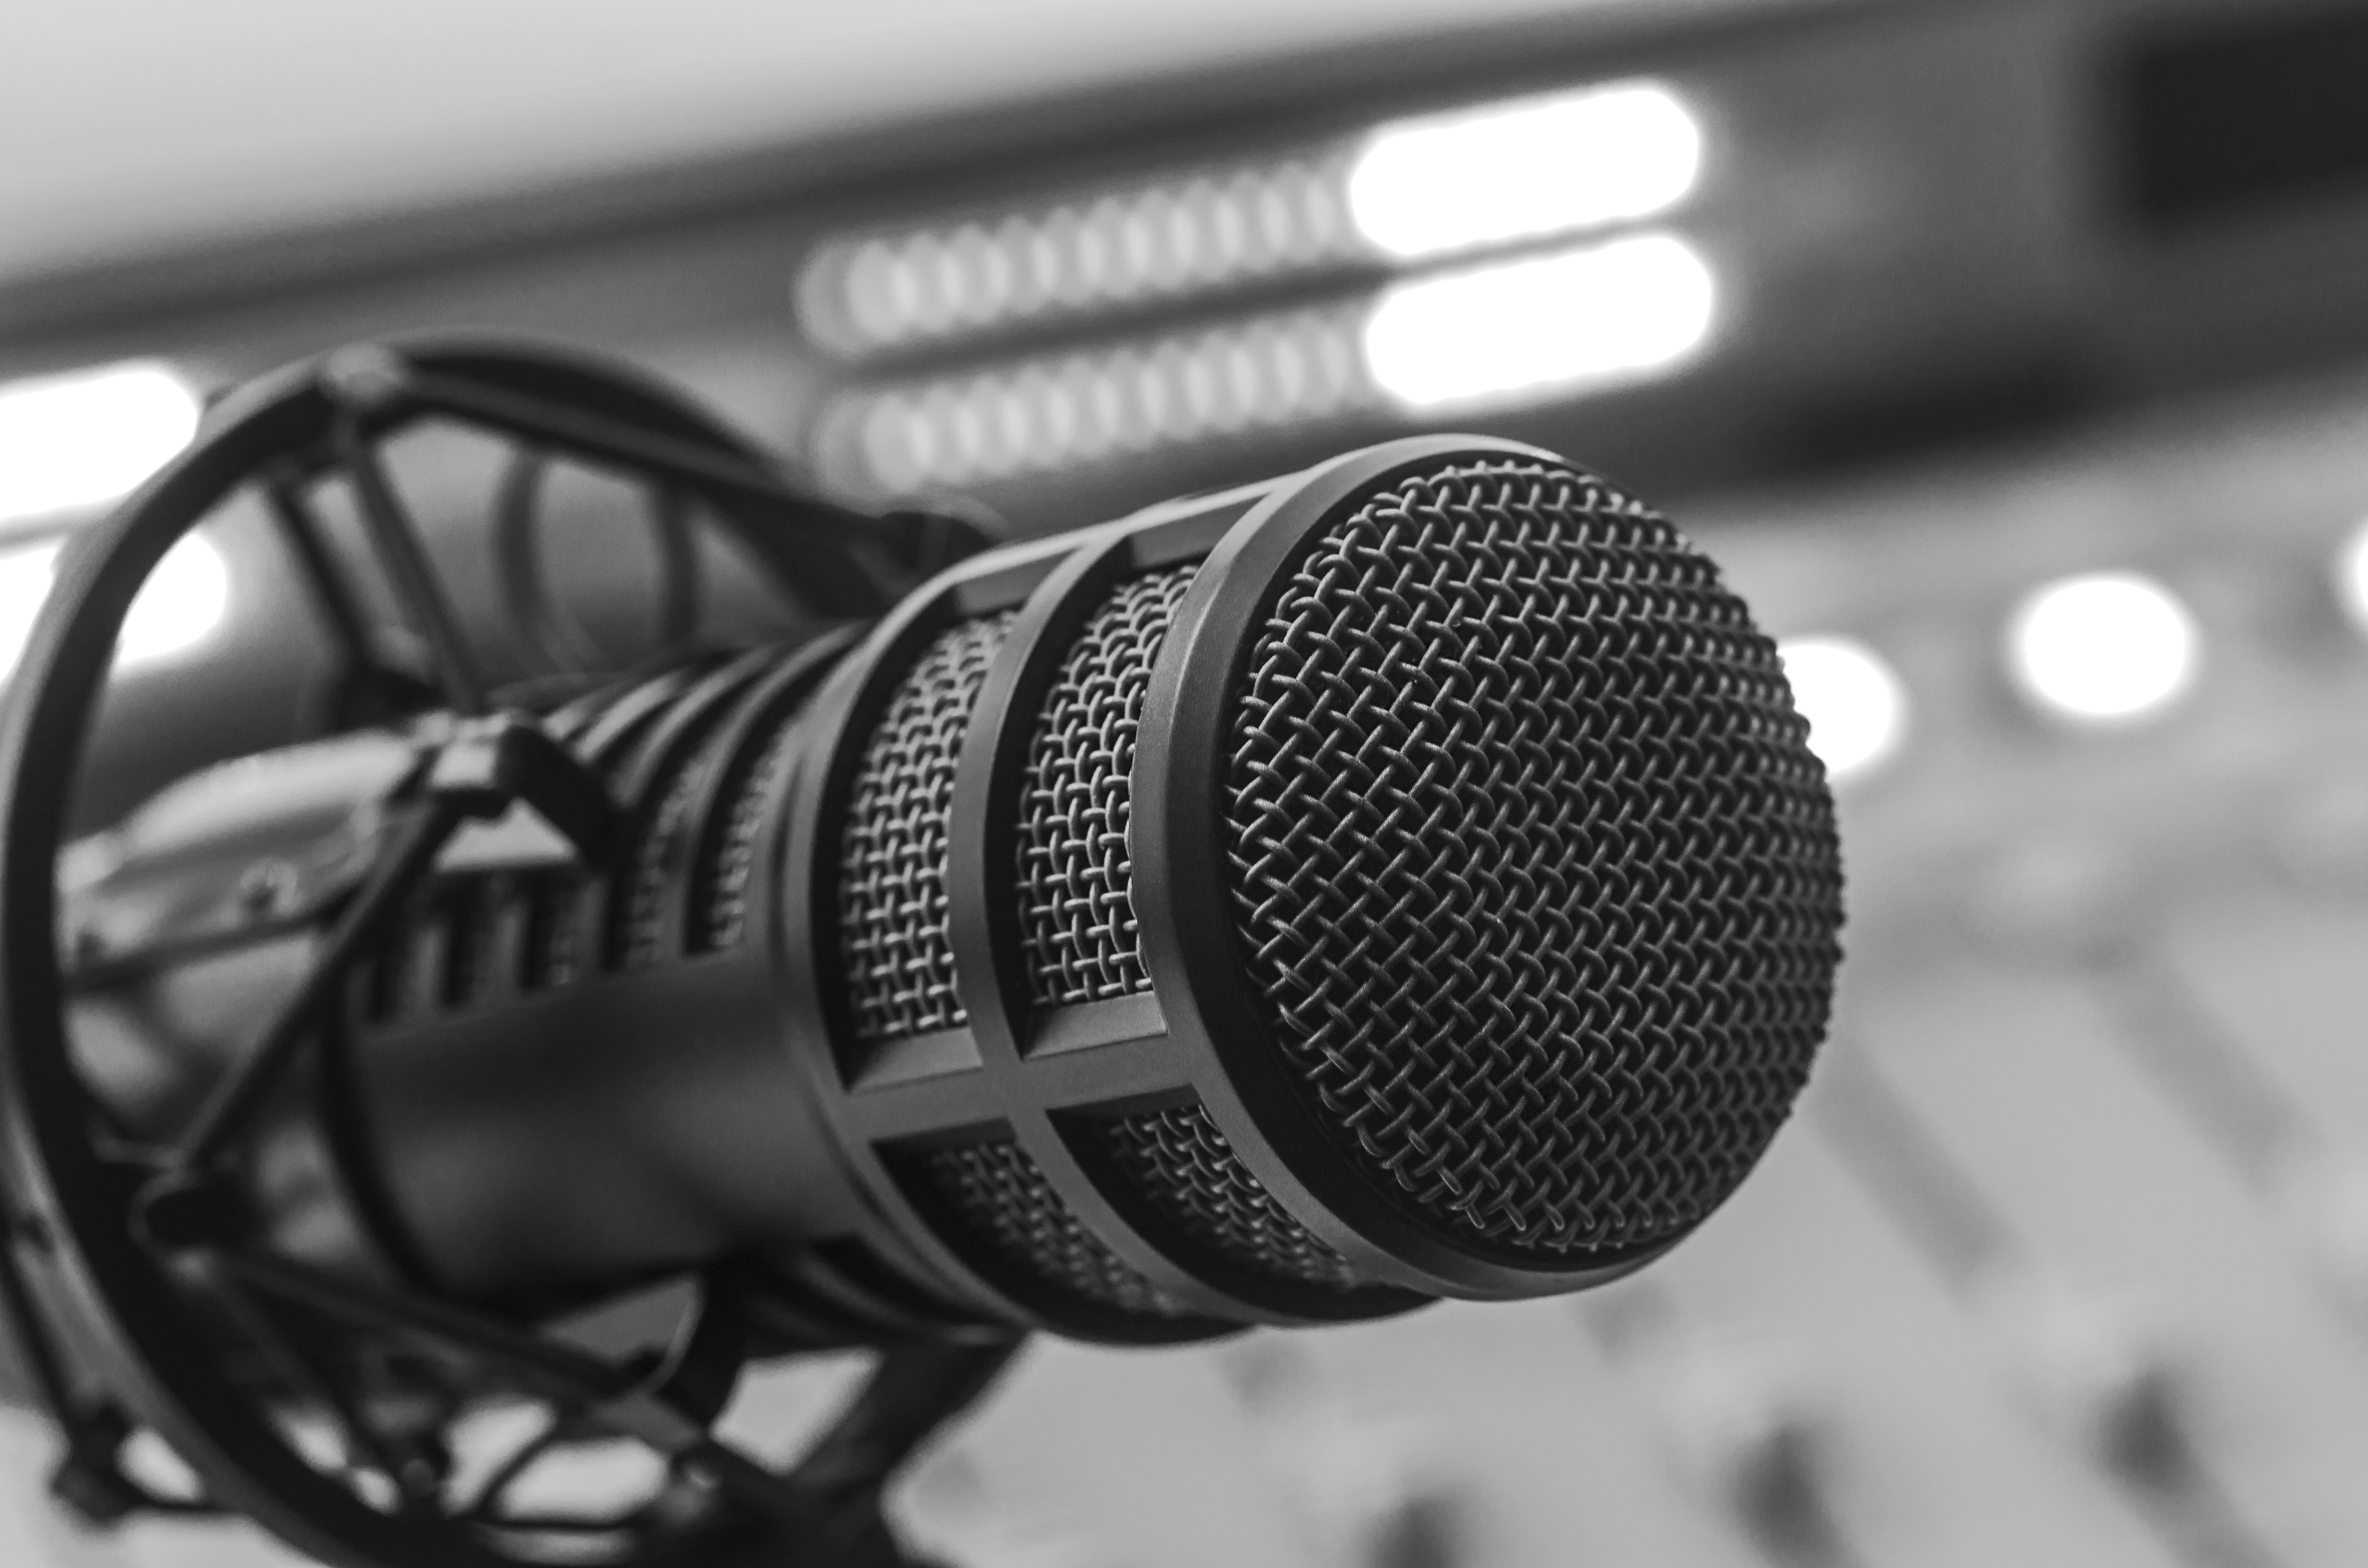 Close up of a microphone and audio console in a radio studio.